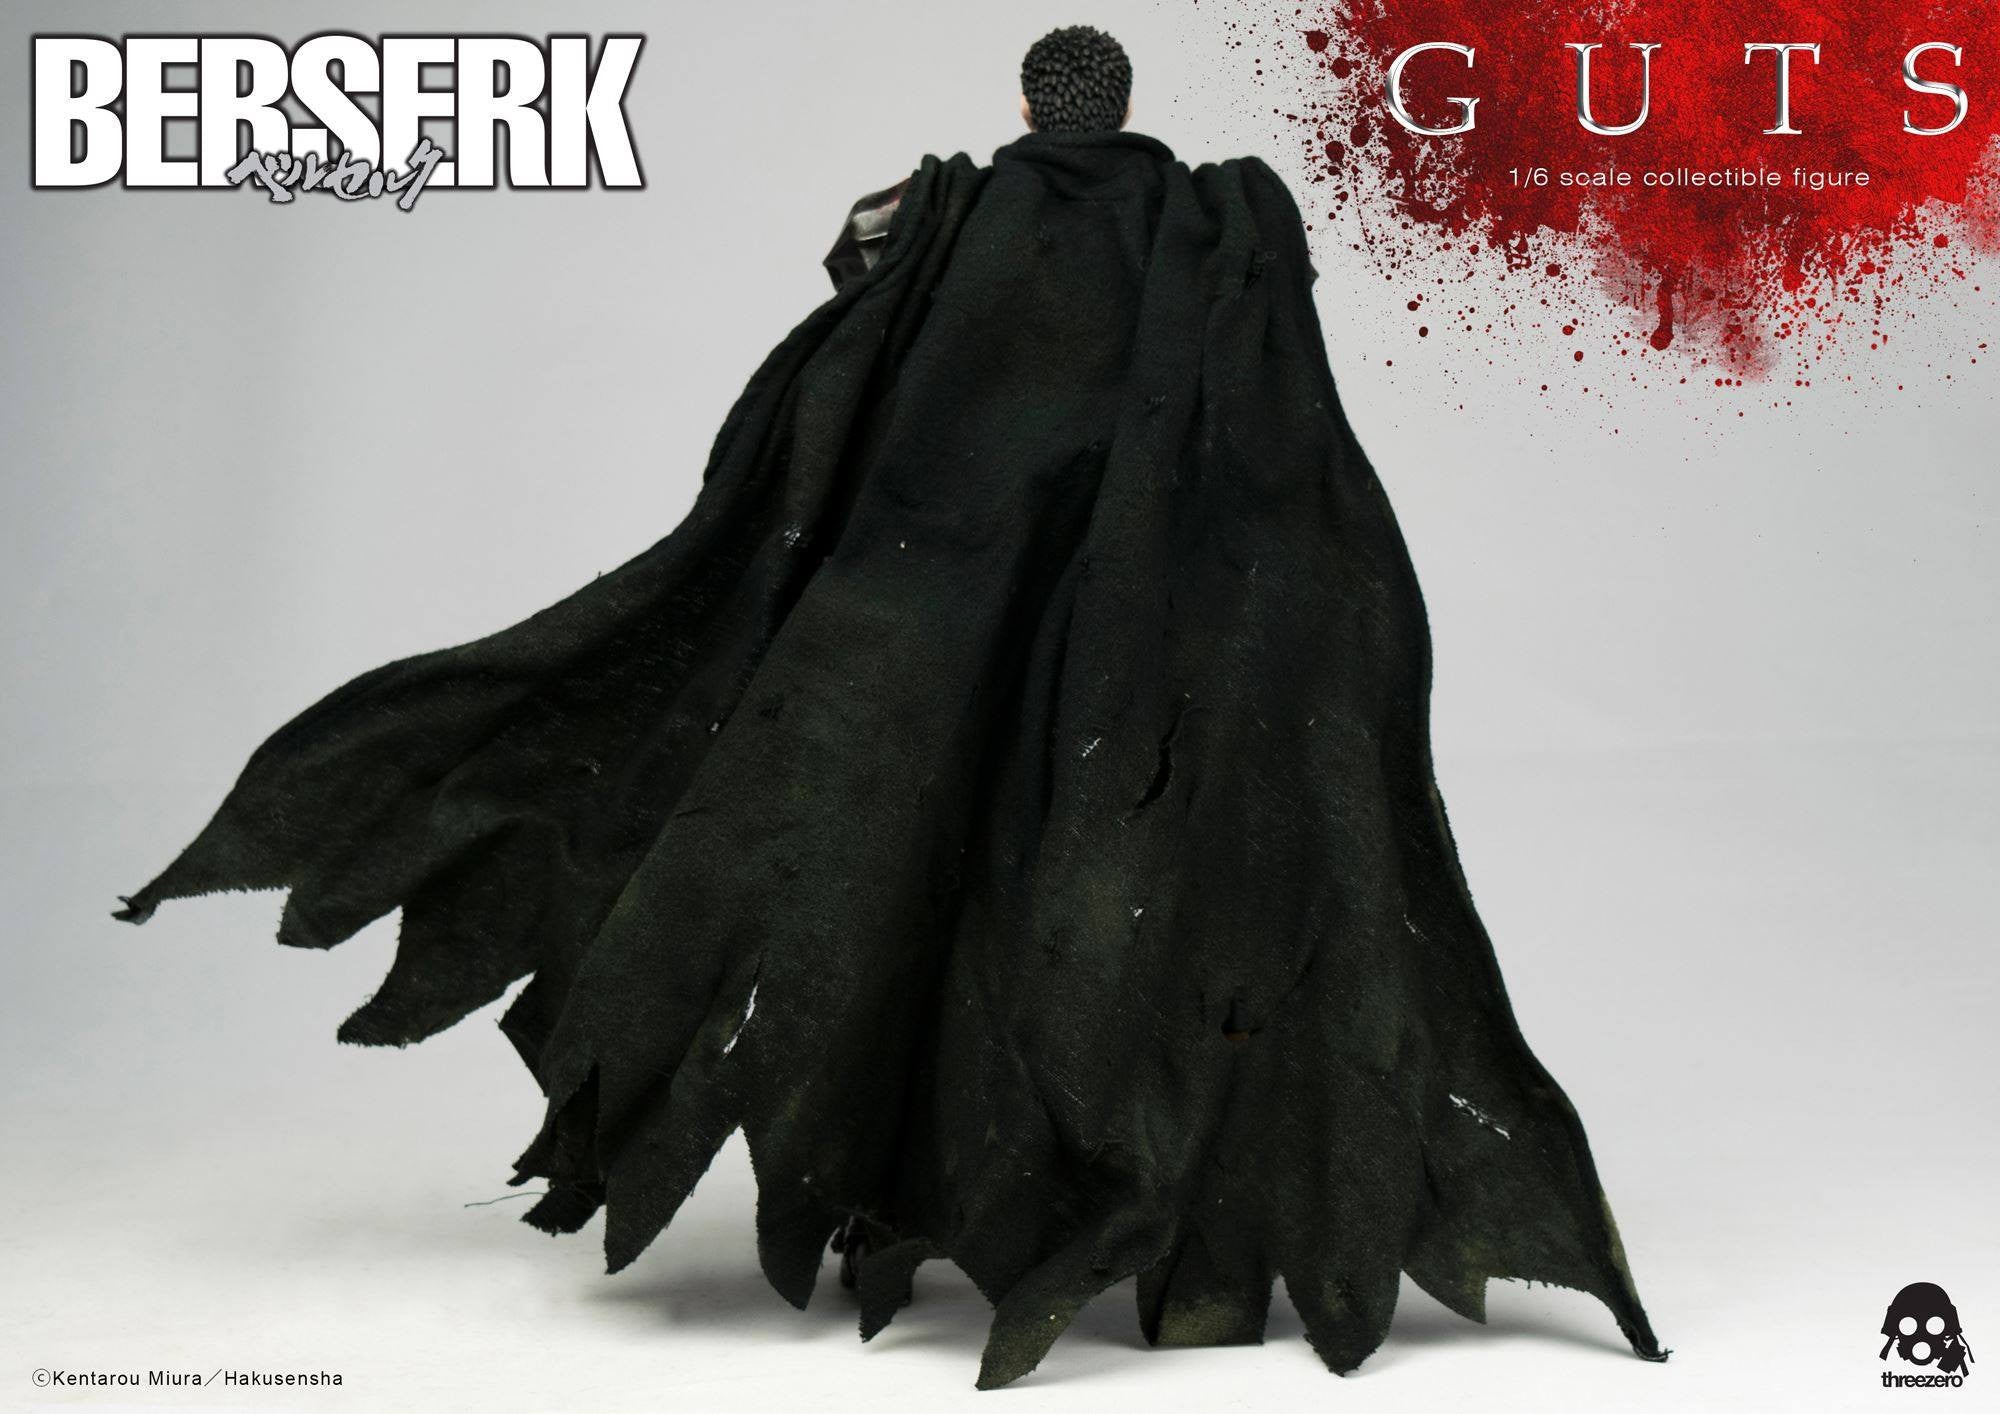 Threezero - Berserk - Guts (Reissue) - Marvelous Toys - 11